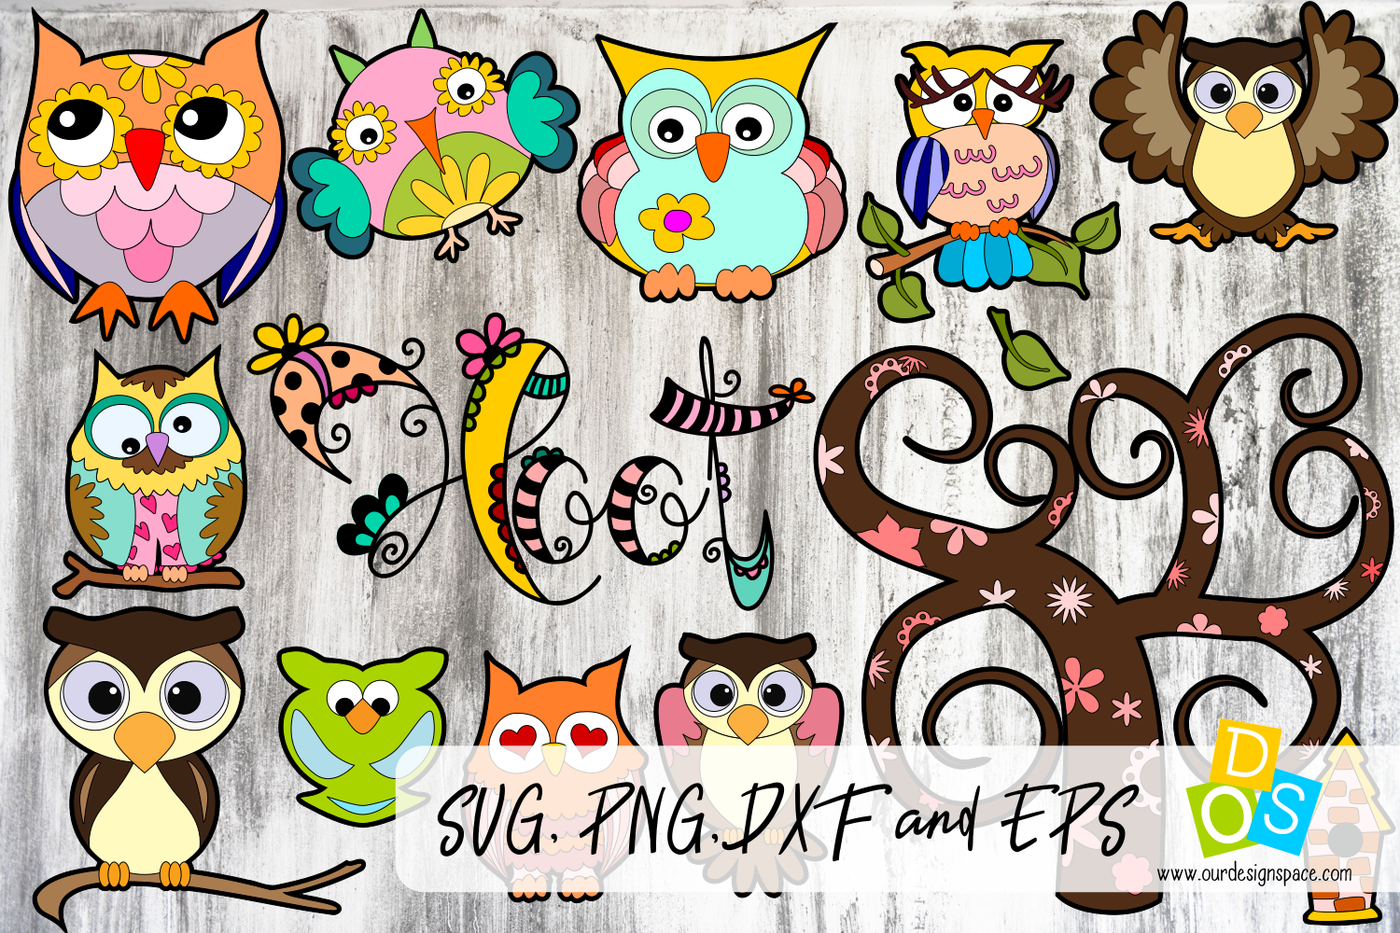 Owl Svg Png Dxf And Eps Bundle By Our Design Space Thehungryjpeg Com